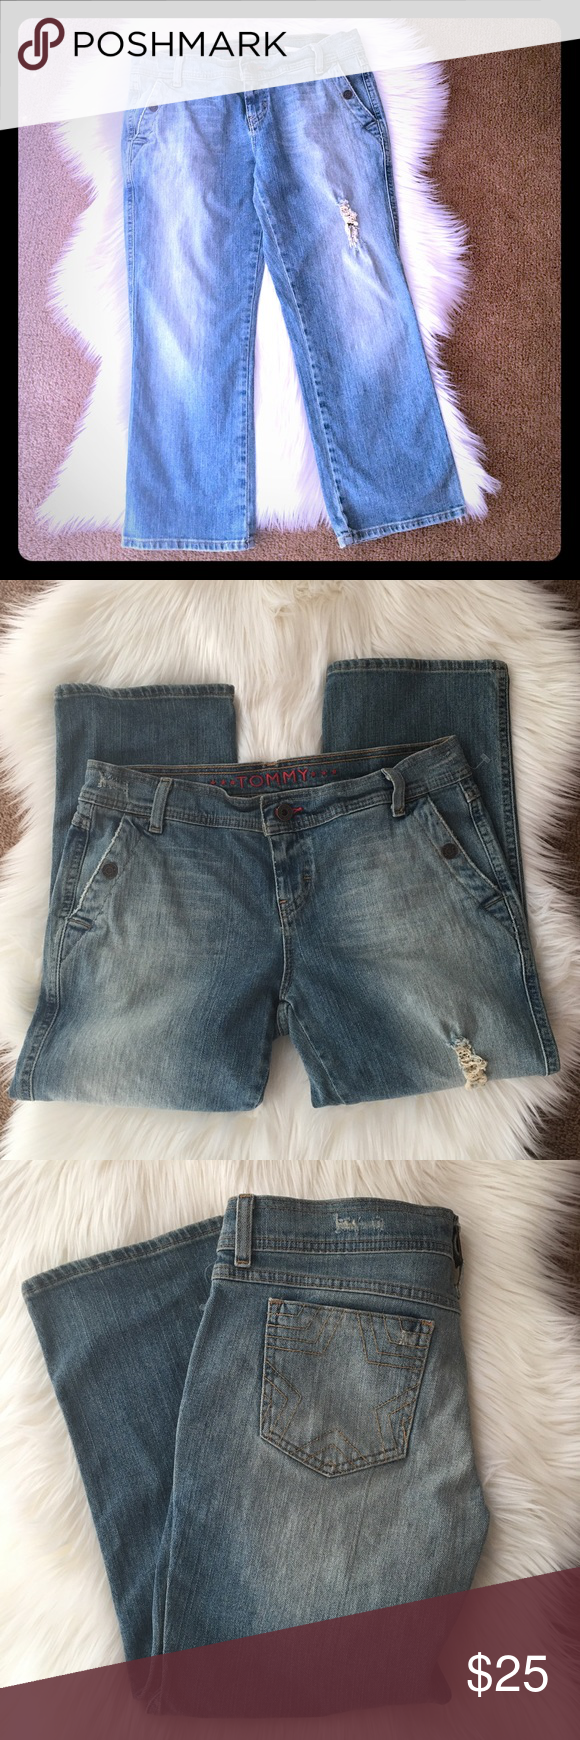 ✨🌟TOMMY Jean ✨🌟 Size 9 ✨🌟 ✨🌟 Excellent Condition! Like new!! 🌟✨ Tommy Hilfiger Jeans Ankle & Cropped